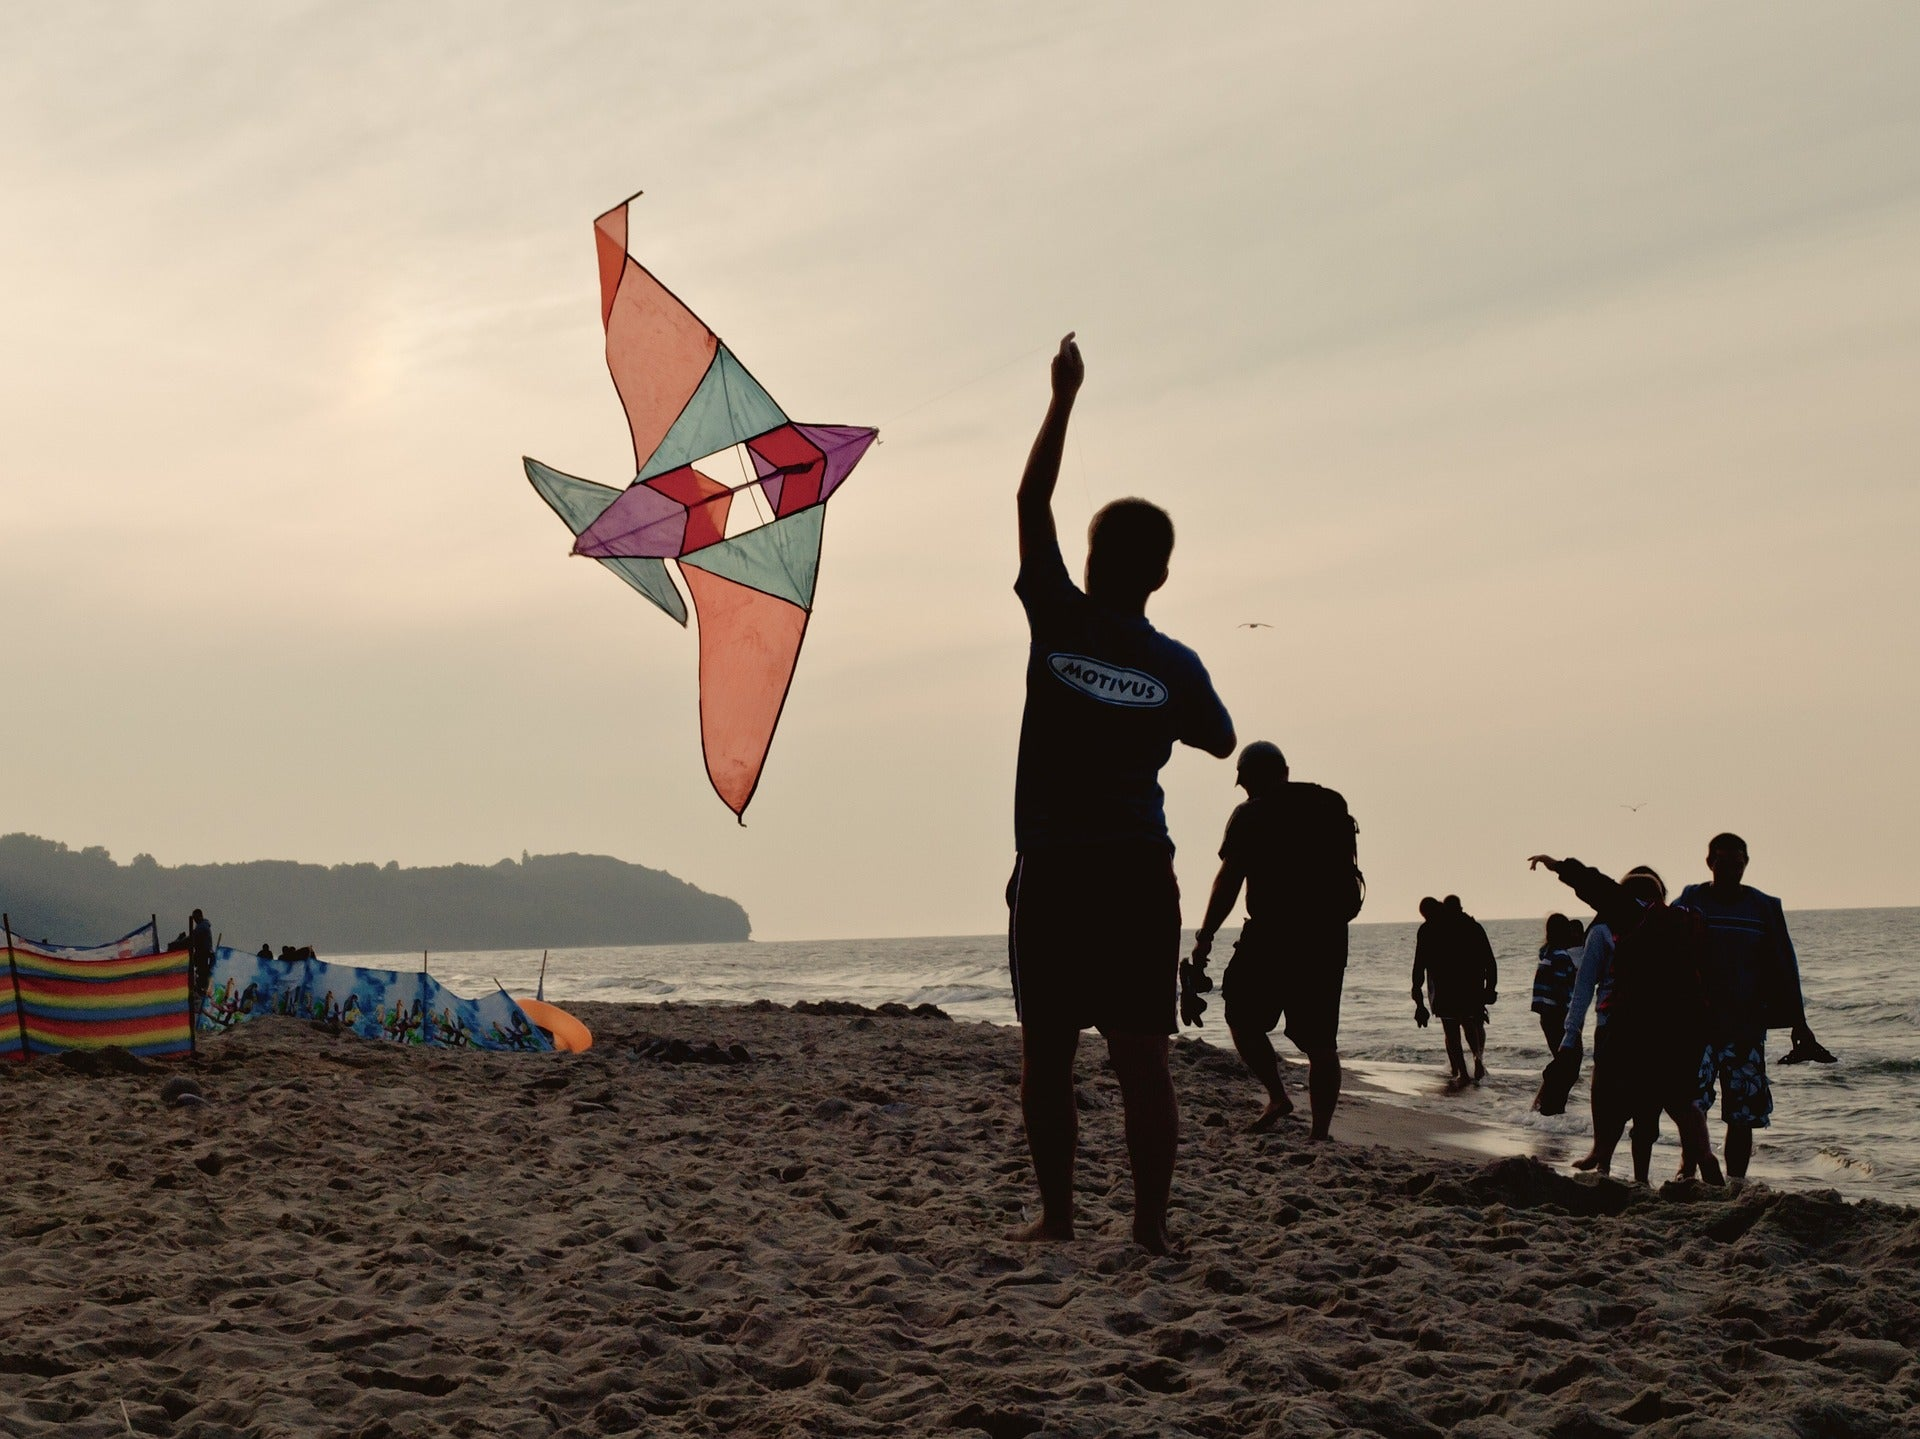 Rad kites for fearless flyers